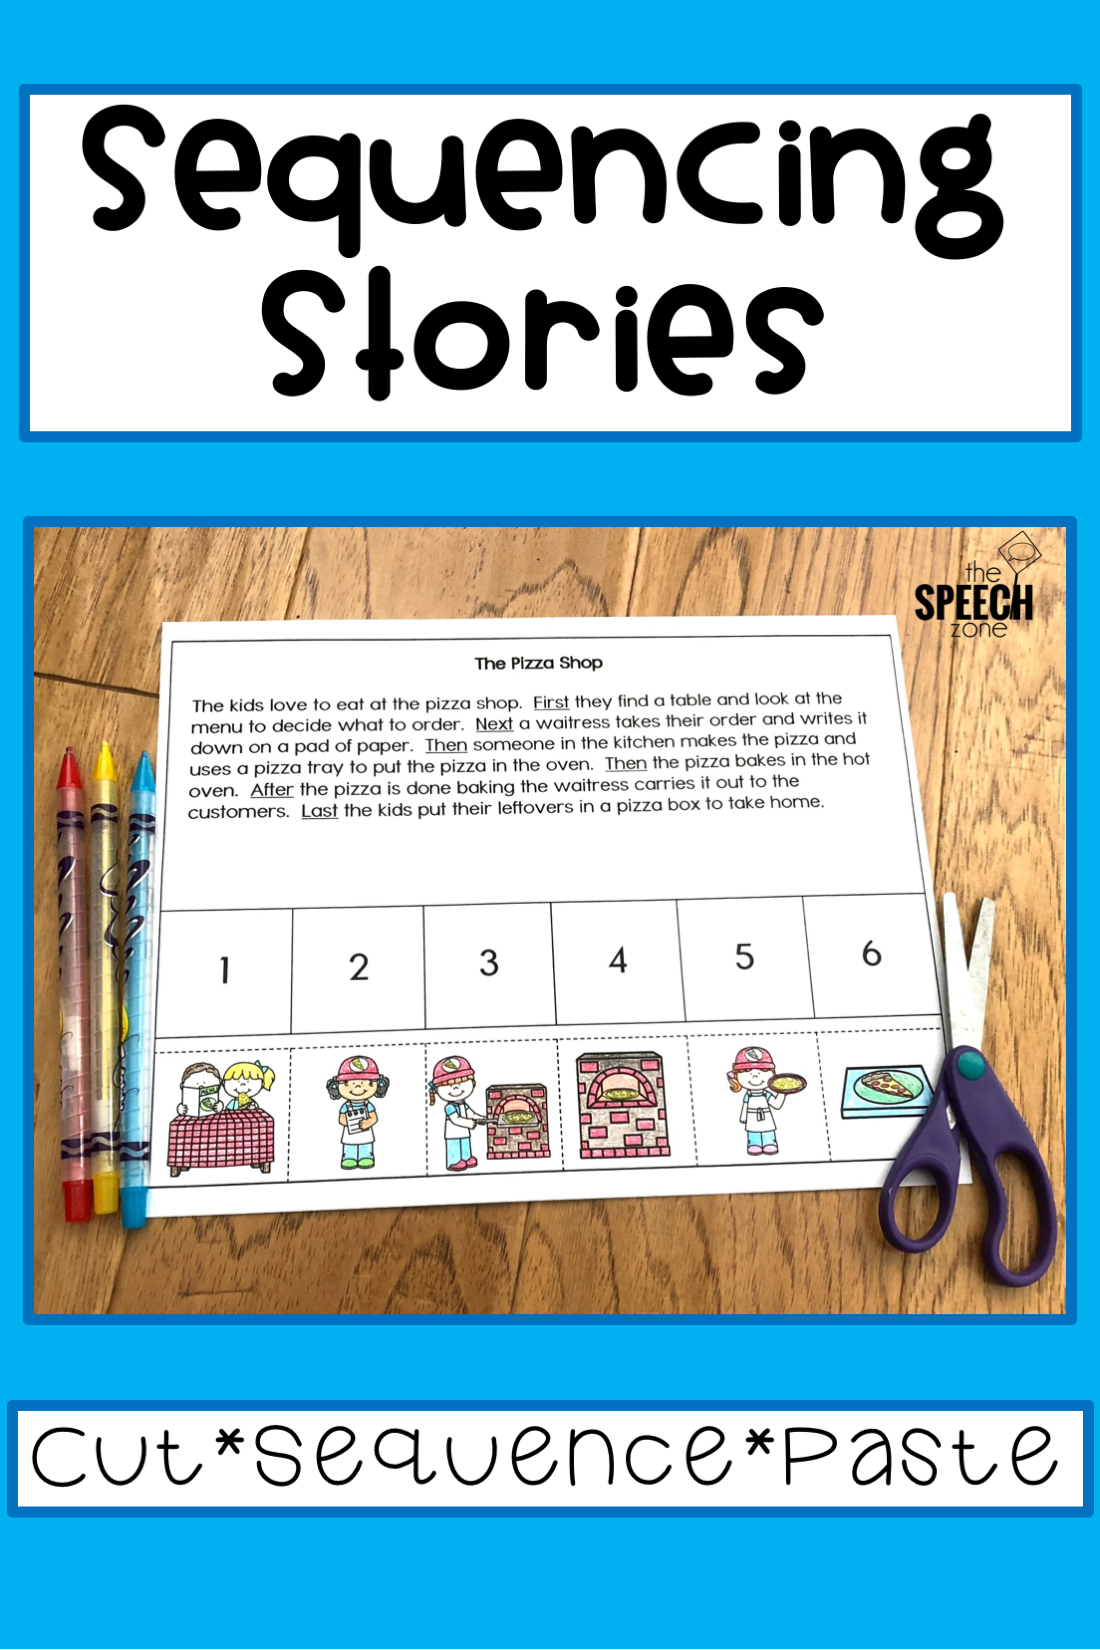 Six Step Sequencing Stories Set 2 Story Retell Articulation Therapy Activities Speech Therapy Materials Speech And Language